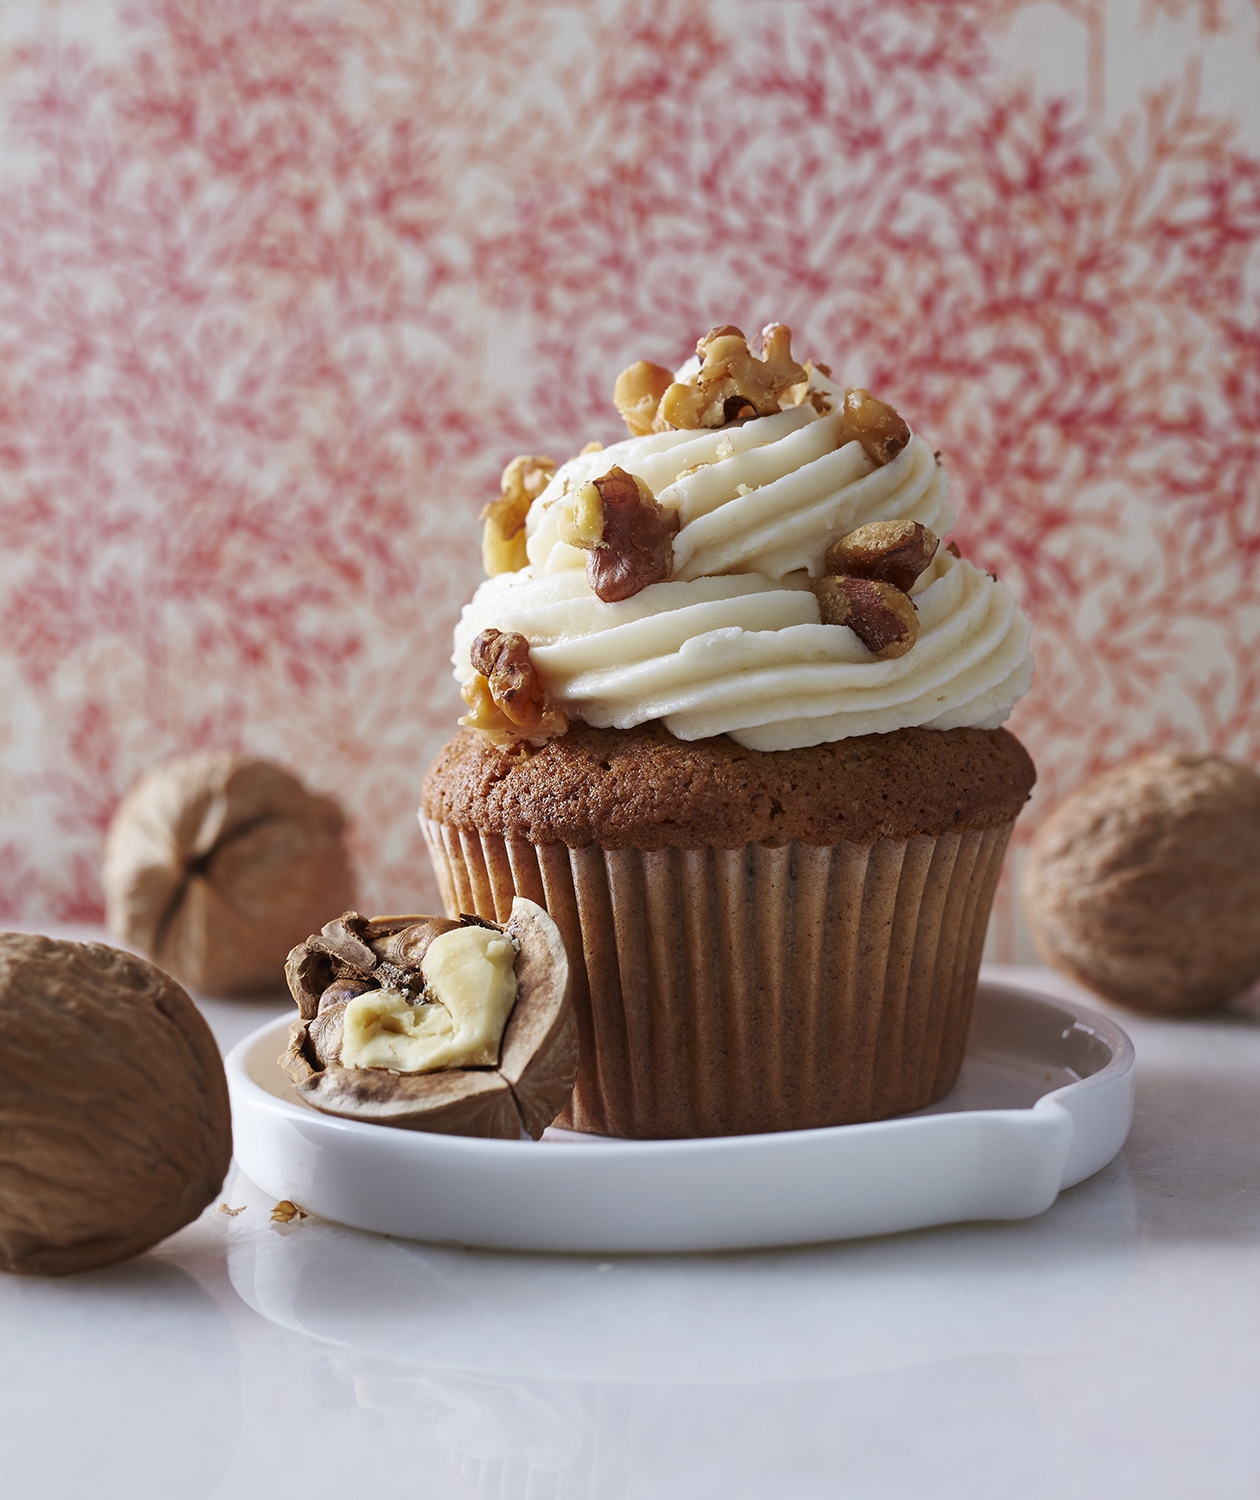 Cinnamon Walnut Cupcakes